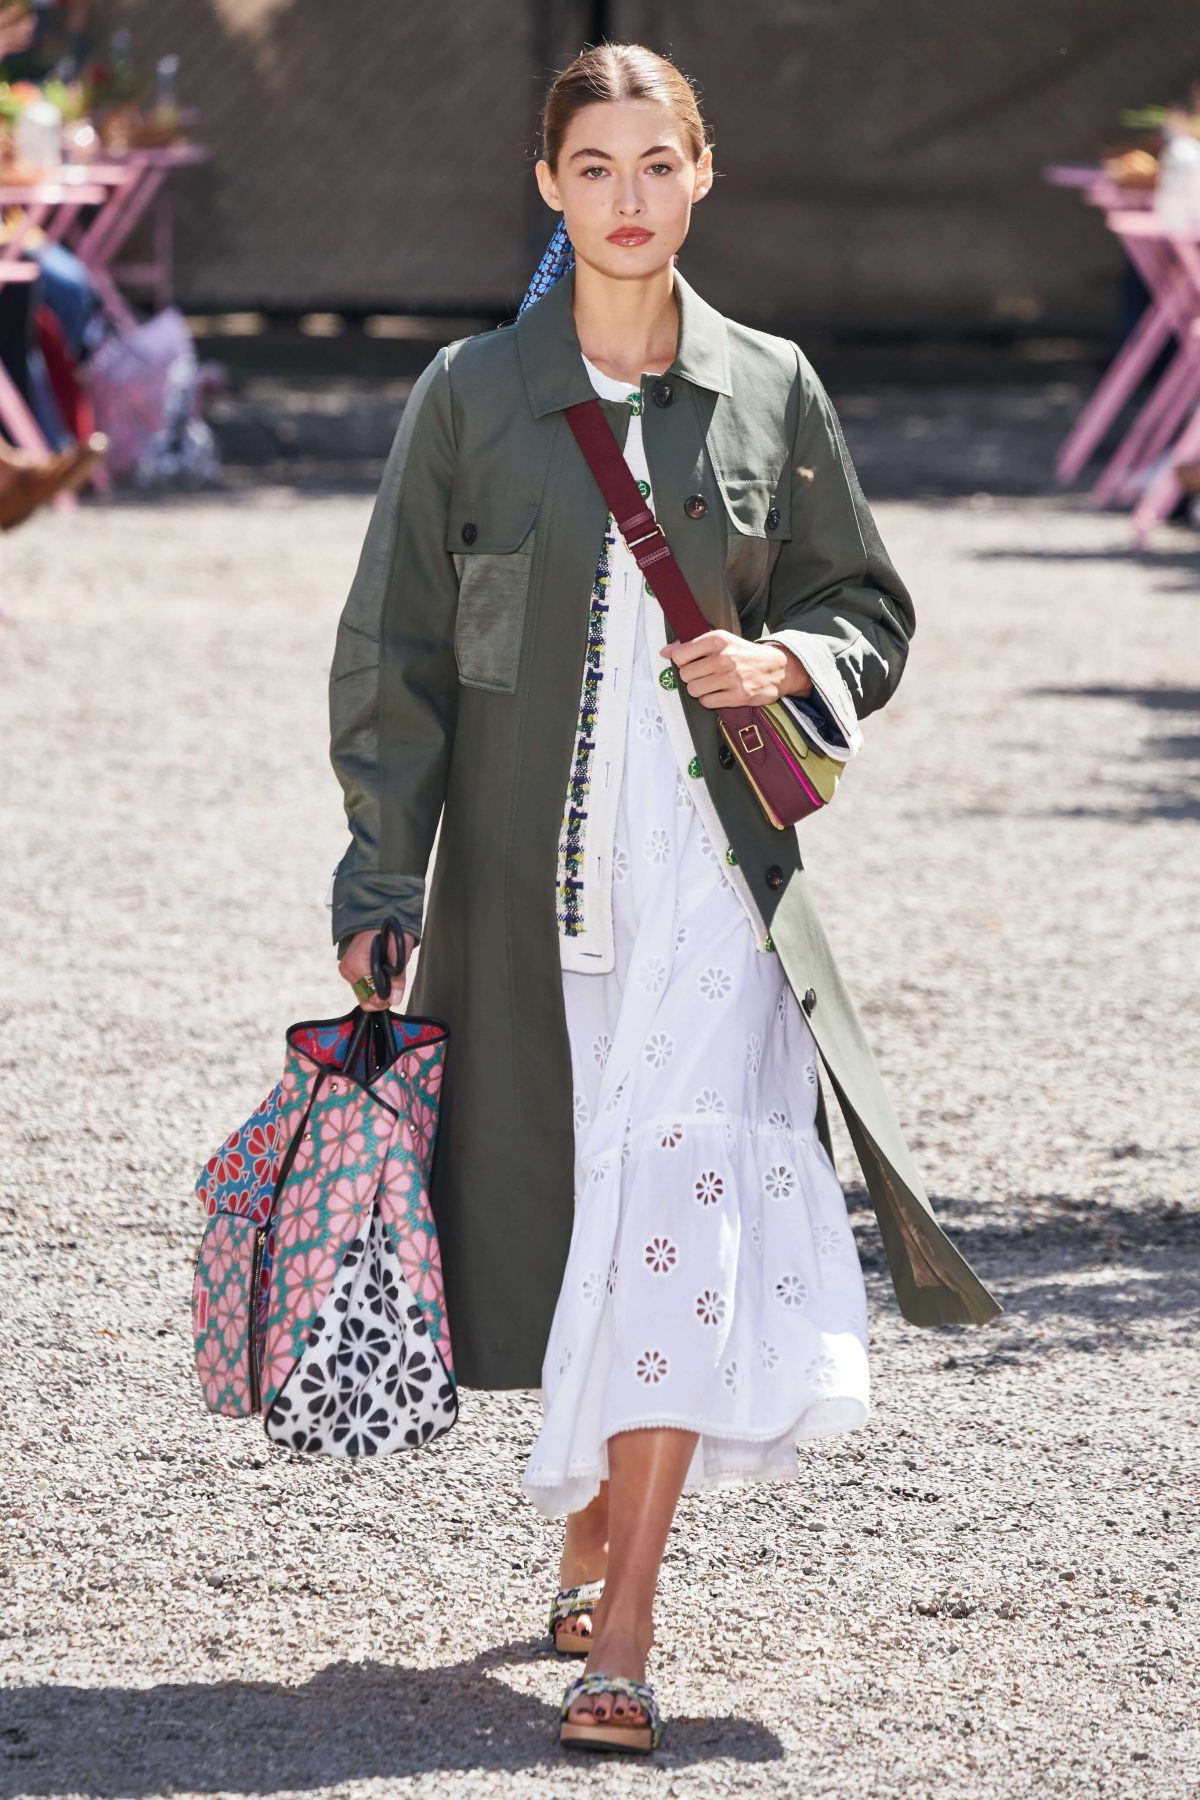 Kate Spade white flower dress with army green trench coat.